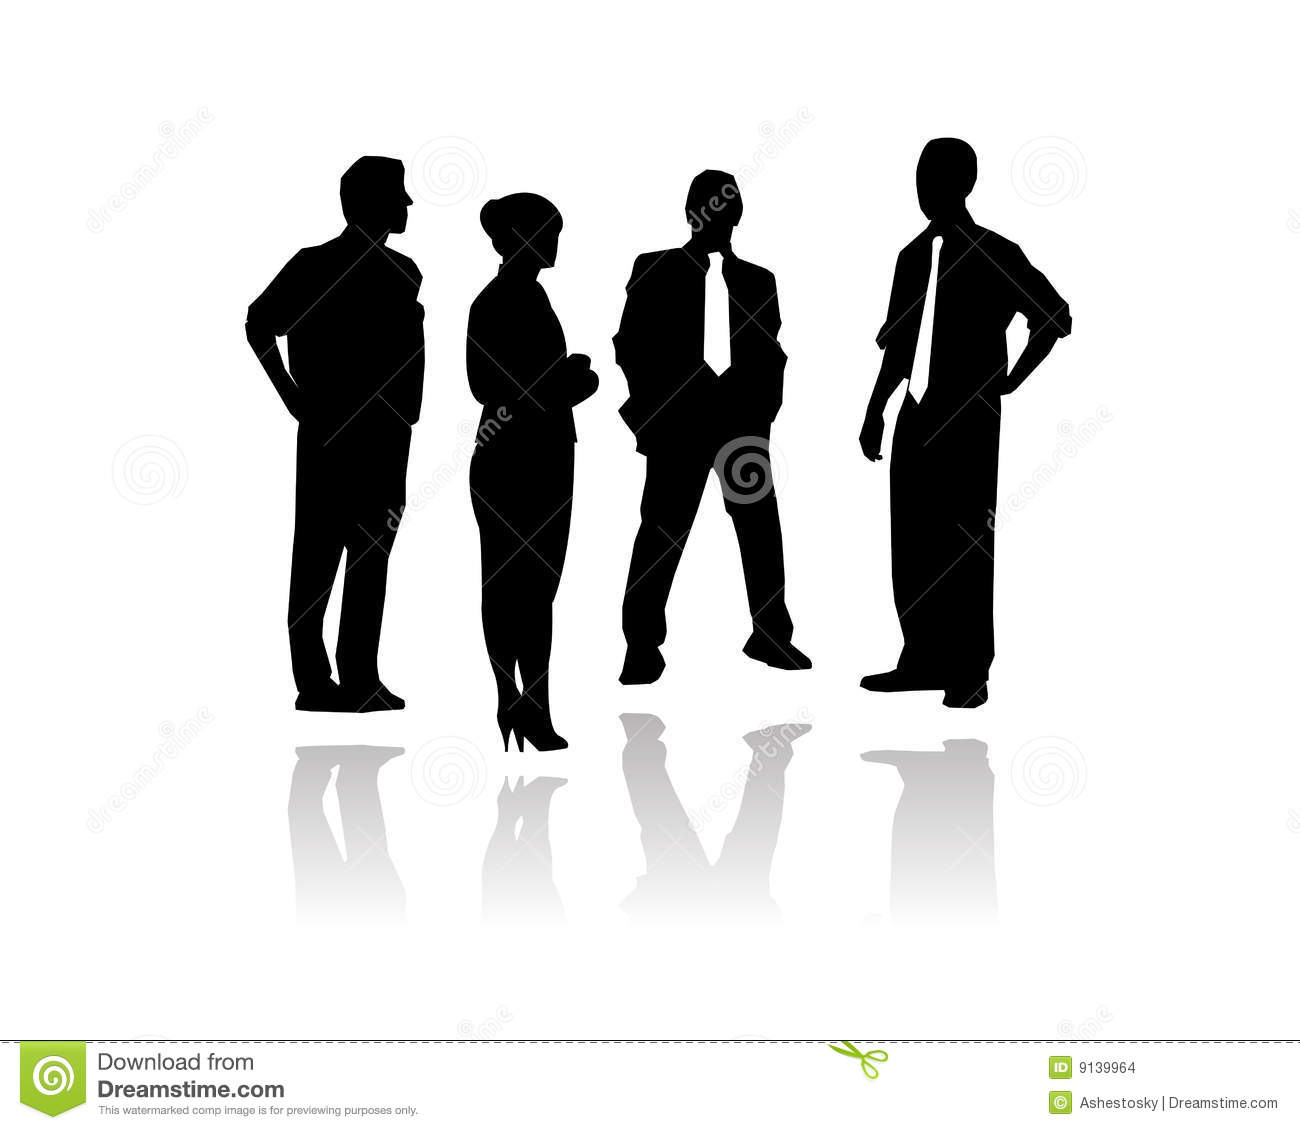 Vectored illustration as silhouette of businessmen and key people ...